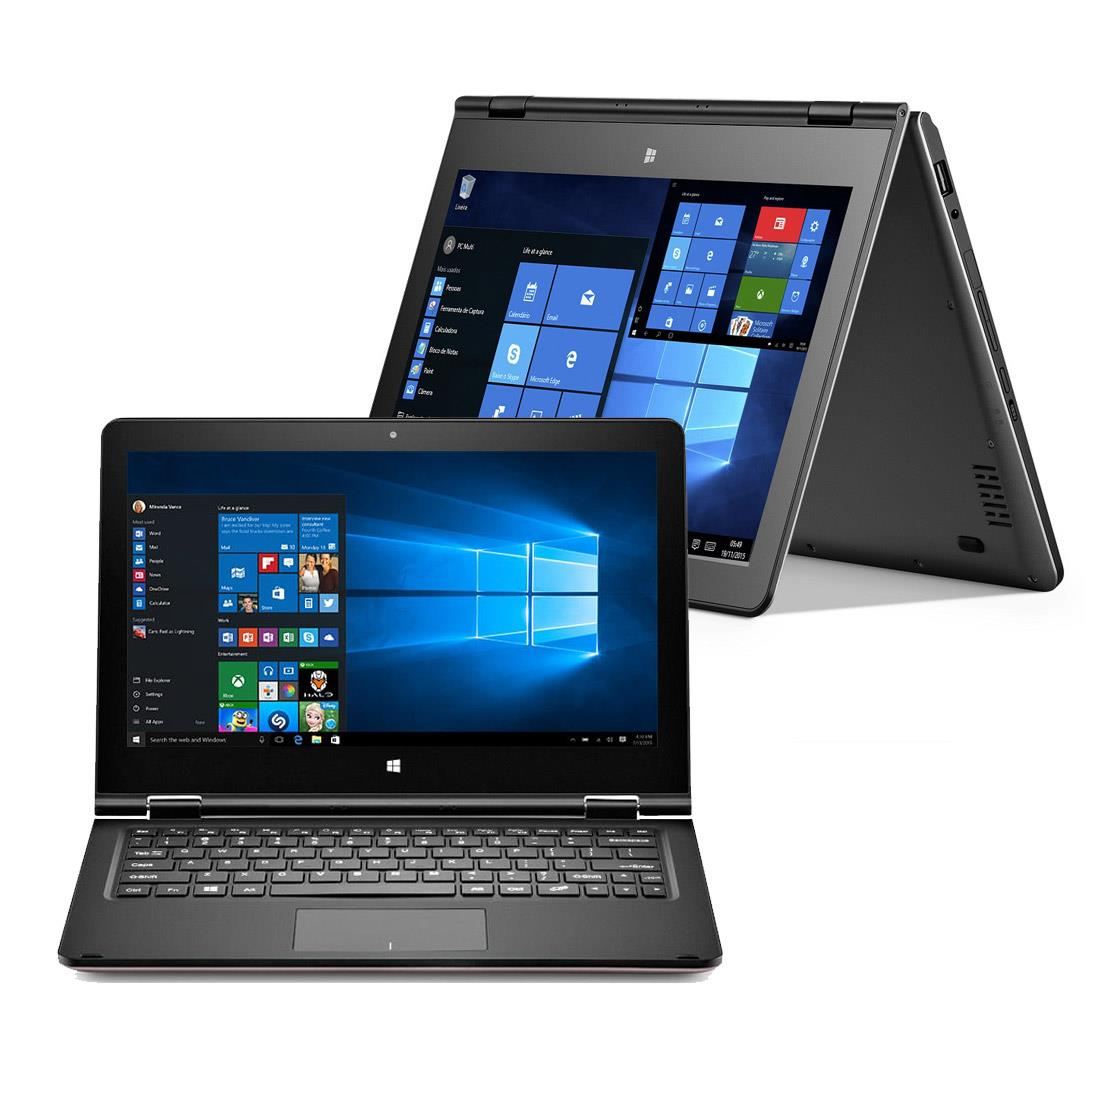 Notebook Multilaser 2 Em1 M11W Nb258 Intel Atom|2Gb|32Gb|11.6 Touch| Cinza